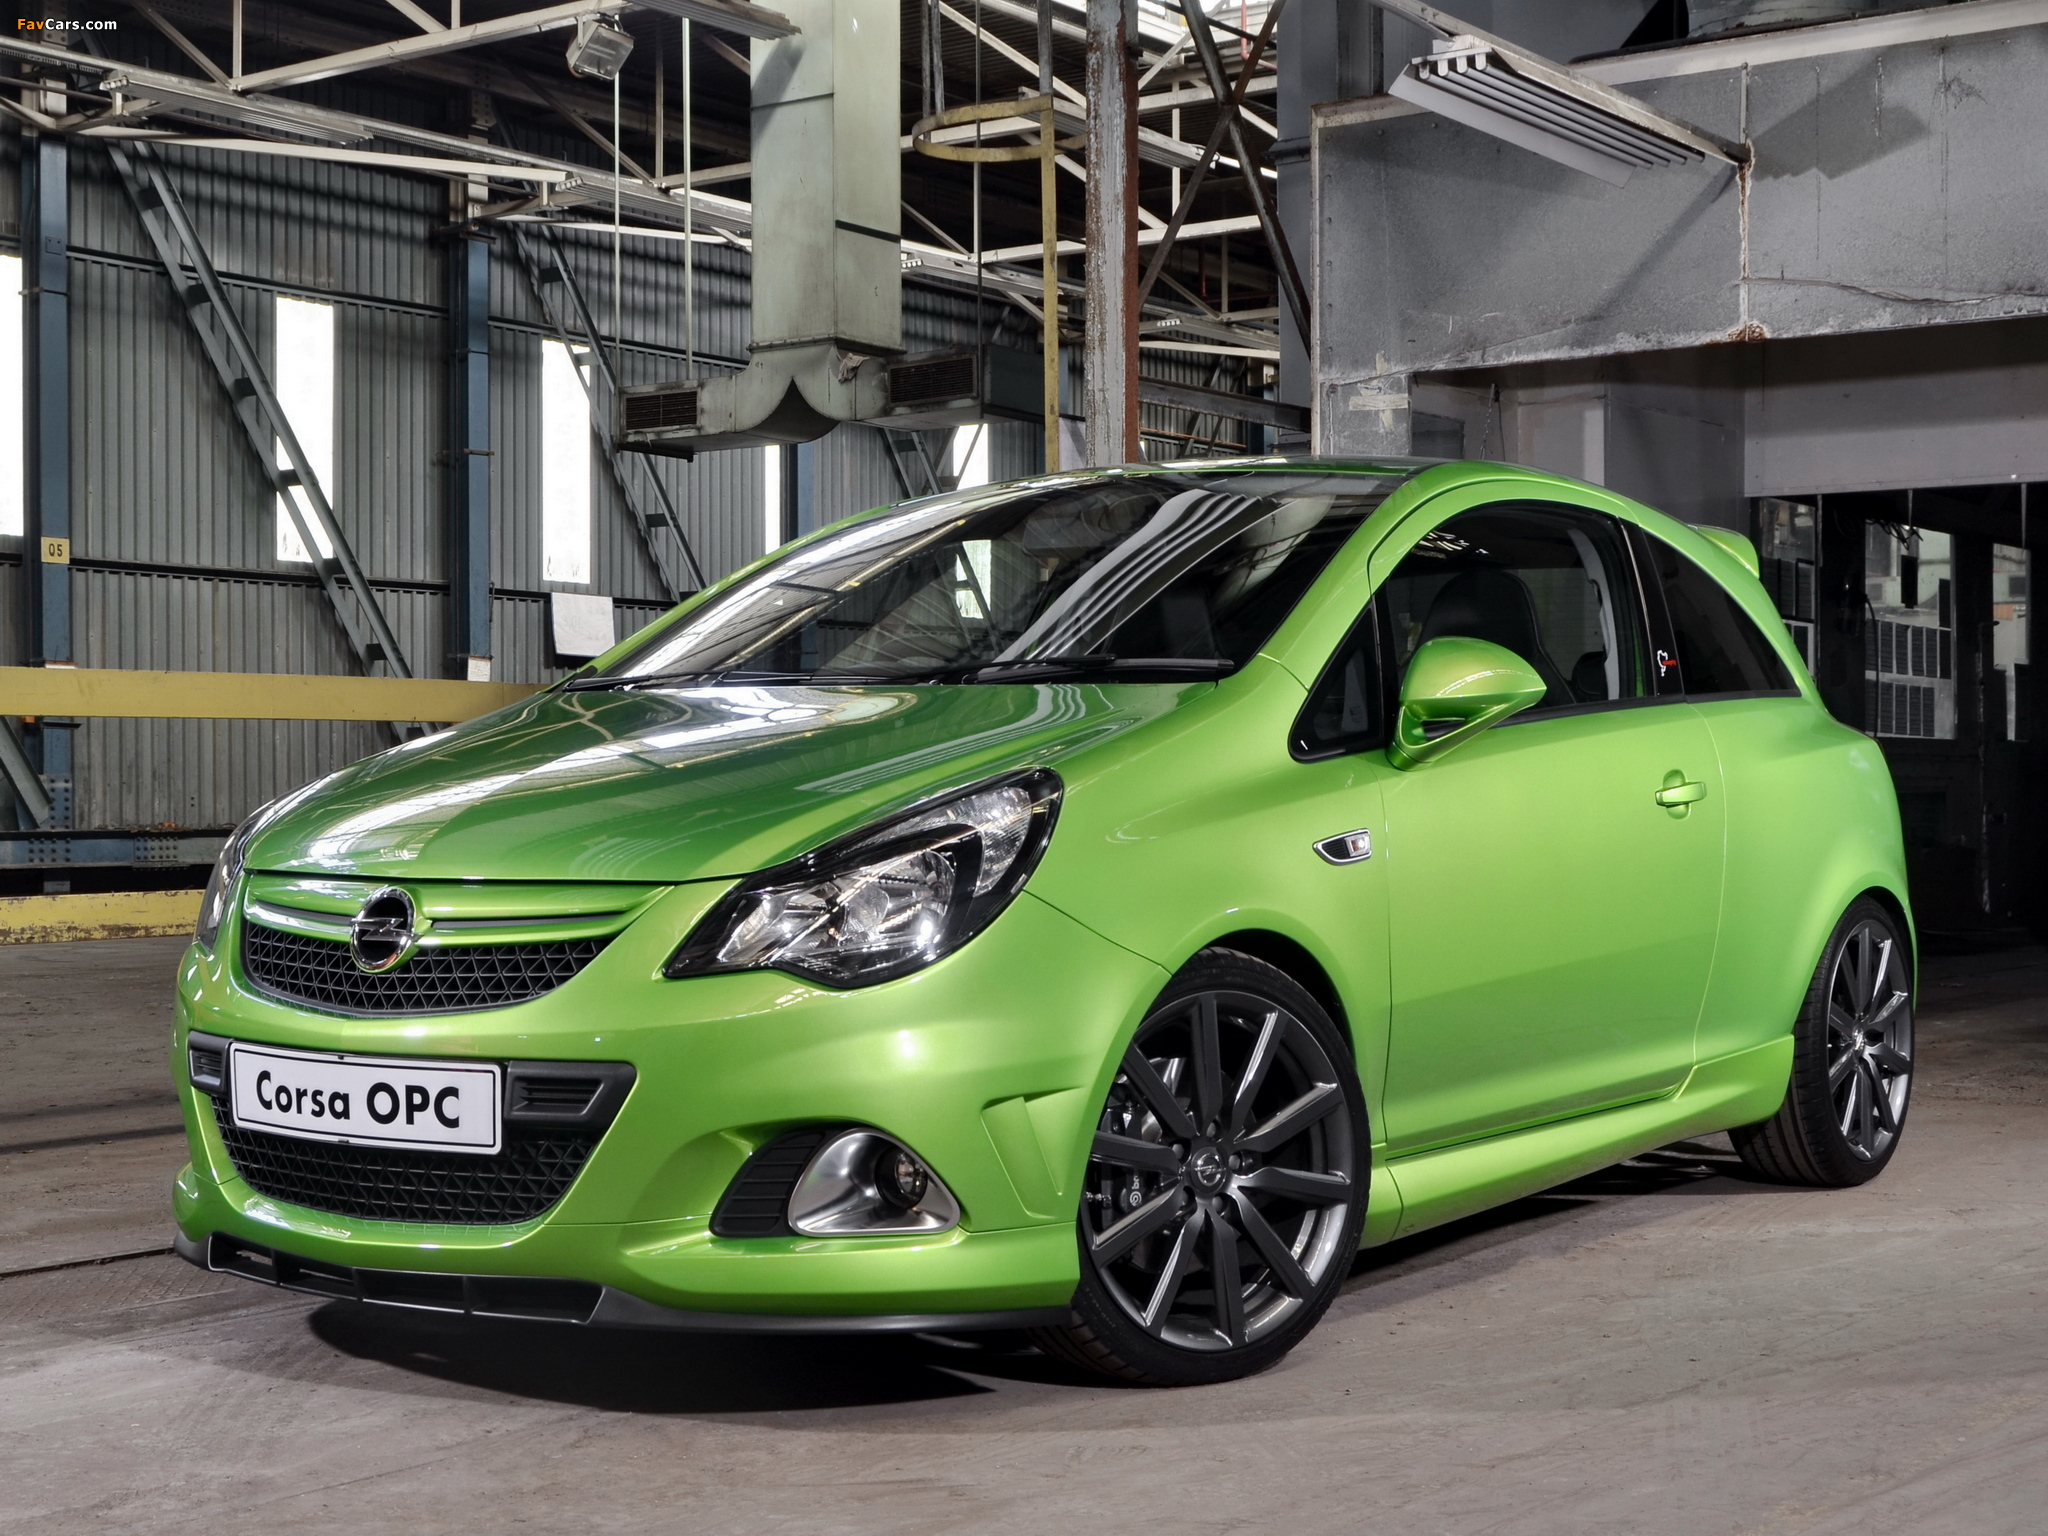 images of opel corsa opc n rburgring edition za spec d. Black Bedroom Furniture Sets. Home Design Ideas